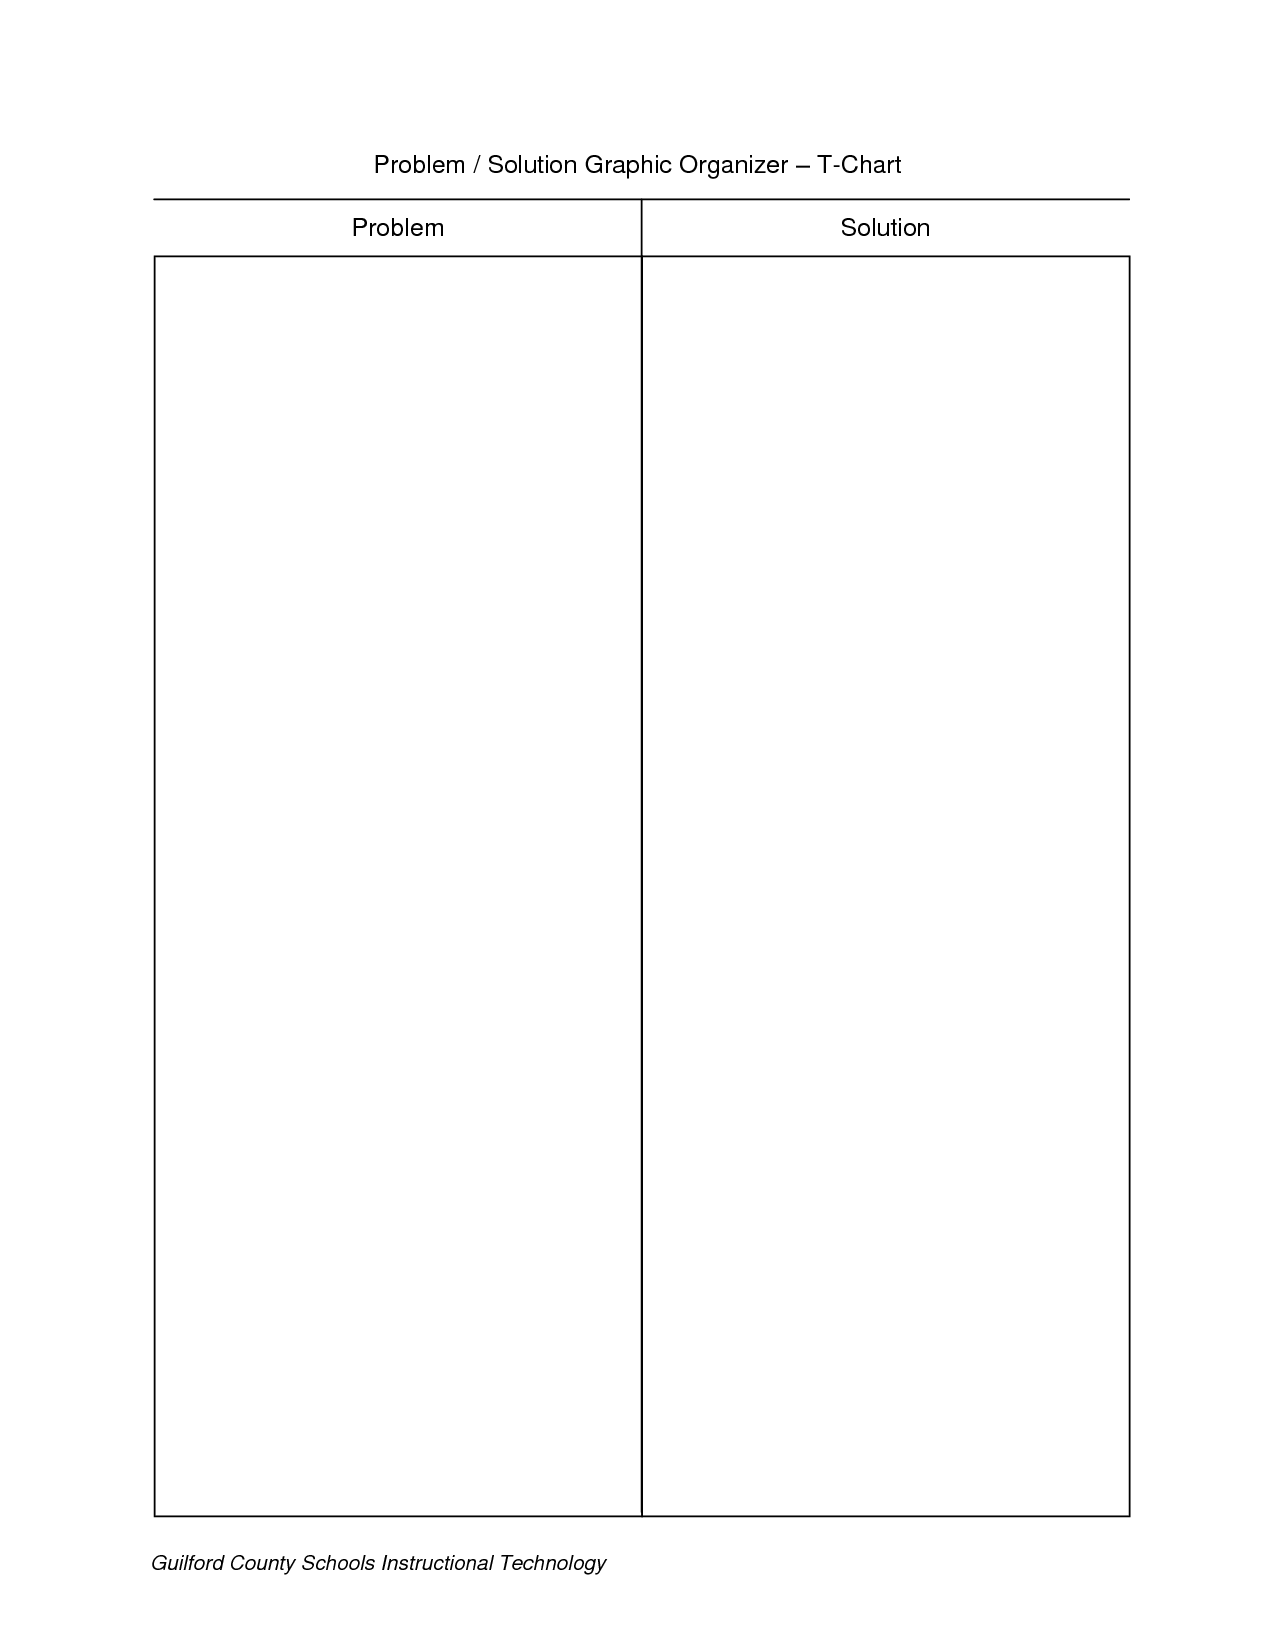 15 graphic organizer templates microsoft word images for Free graphic organizer templates